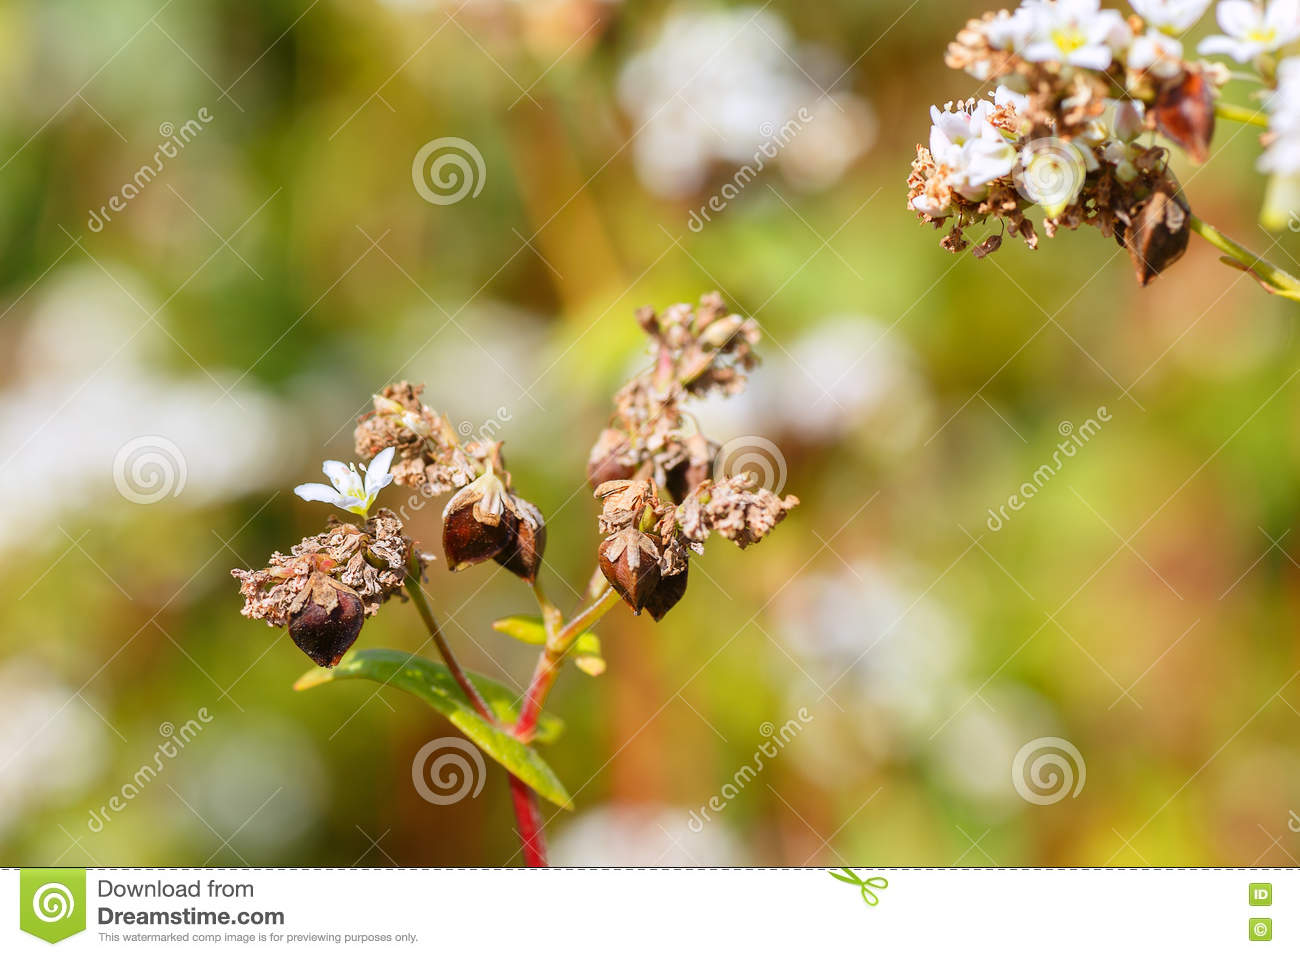 Buckwheat Flowers With Selective Focus Stock Image Of Grain Use In Macro Photography For Dummies Photo Flower Plant Natural Background Blossom